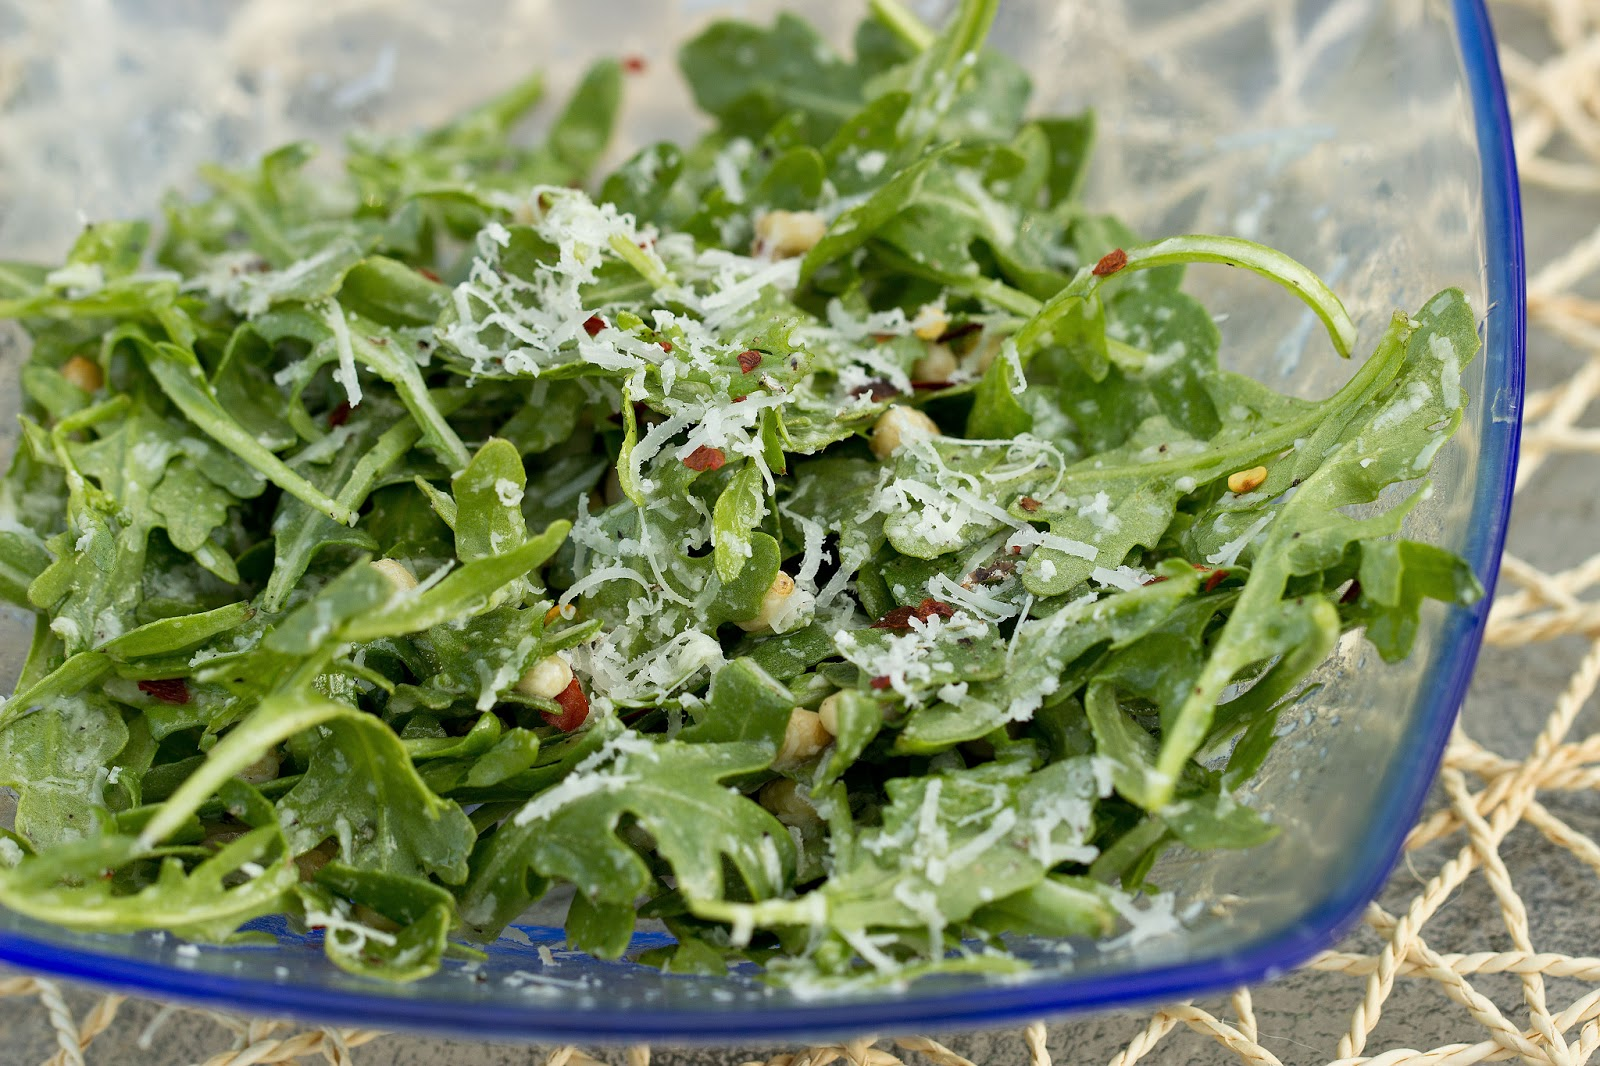 7 Oz Bag Of Baby Arugula 2 Oz Block Of Manchego Cheese About 1 3 Cup Shredded 1 4 Cup Pine Nuts 1 4 Cup Of Good Olive Oil